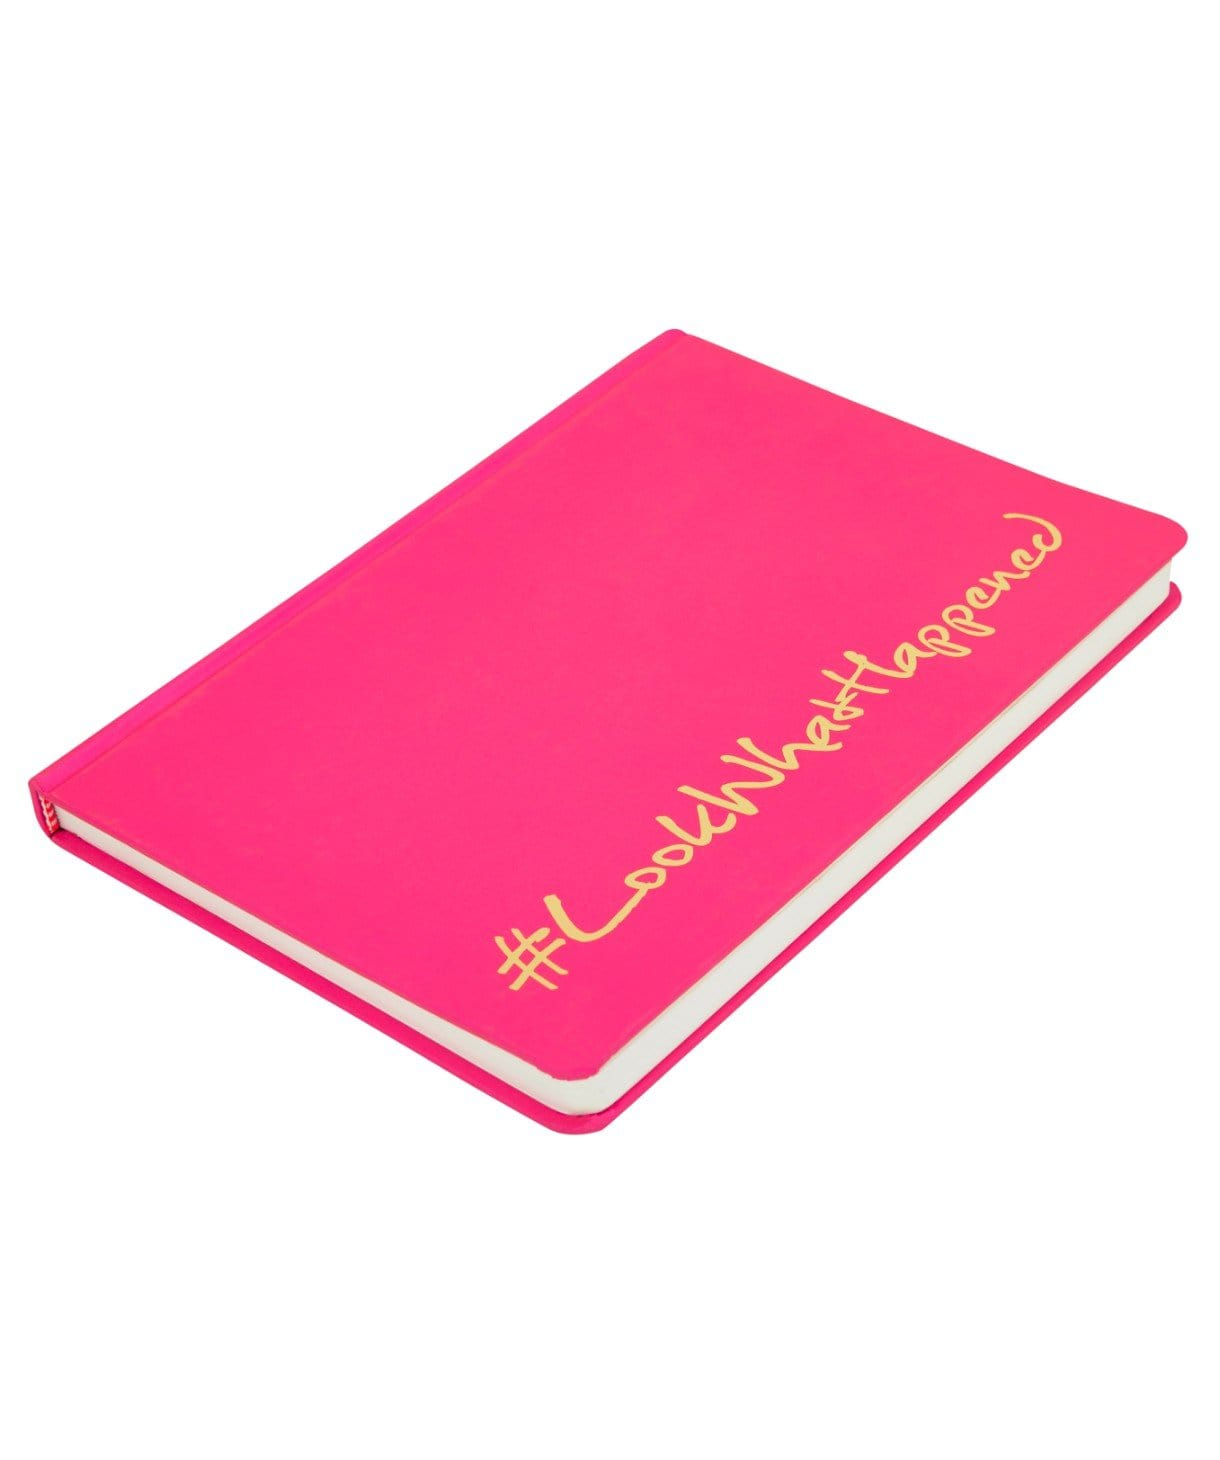 LWH - SILKY PINK Diary (hard cover) - Uptownie